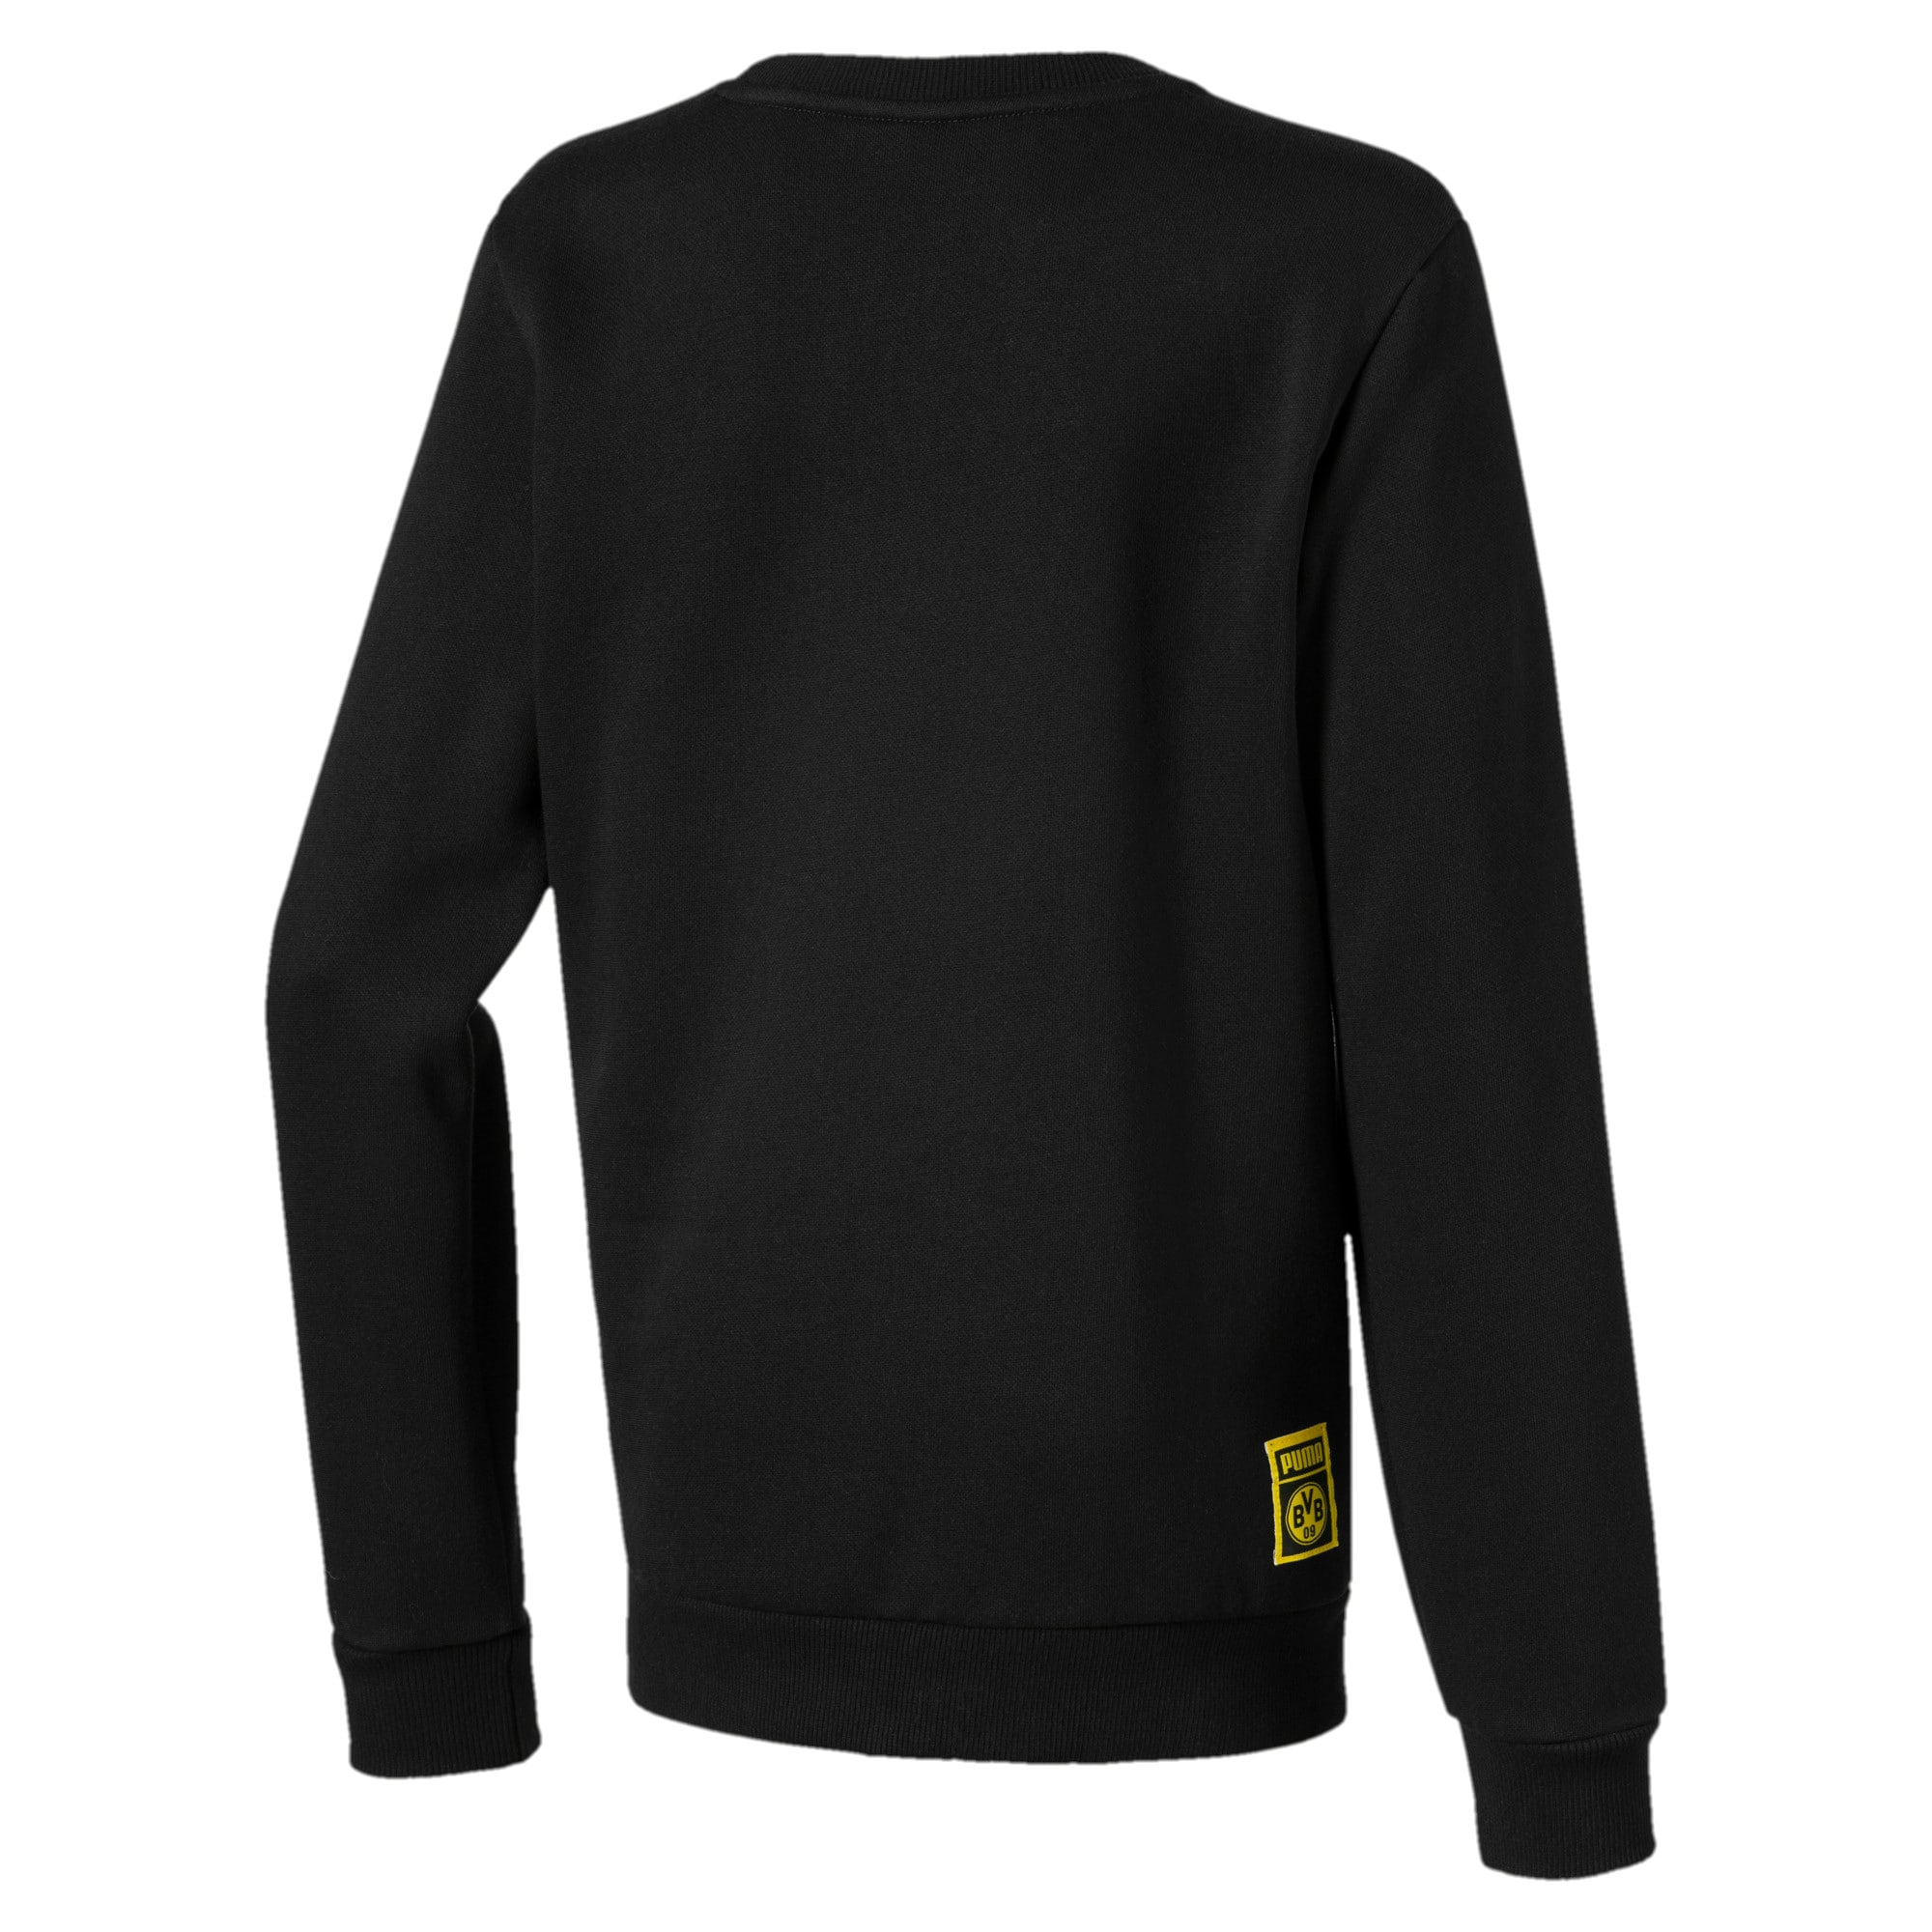 Thumbnail 2 of BVB DNA Kids' Sweater, Puma Black, medium